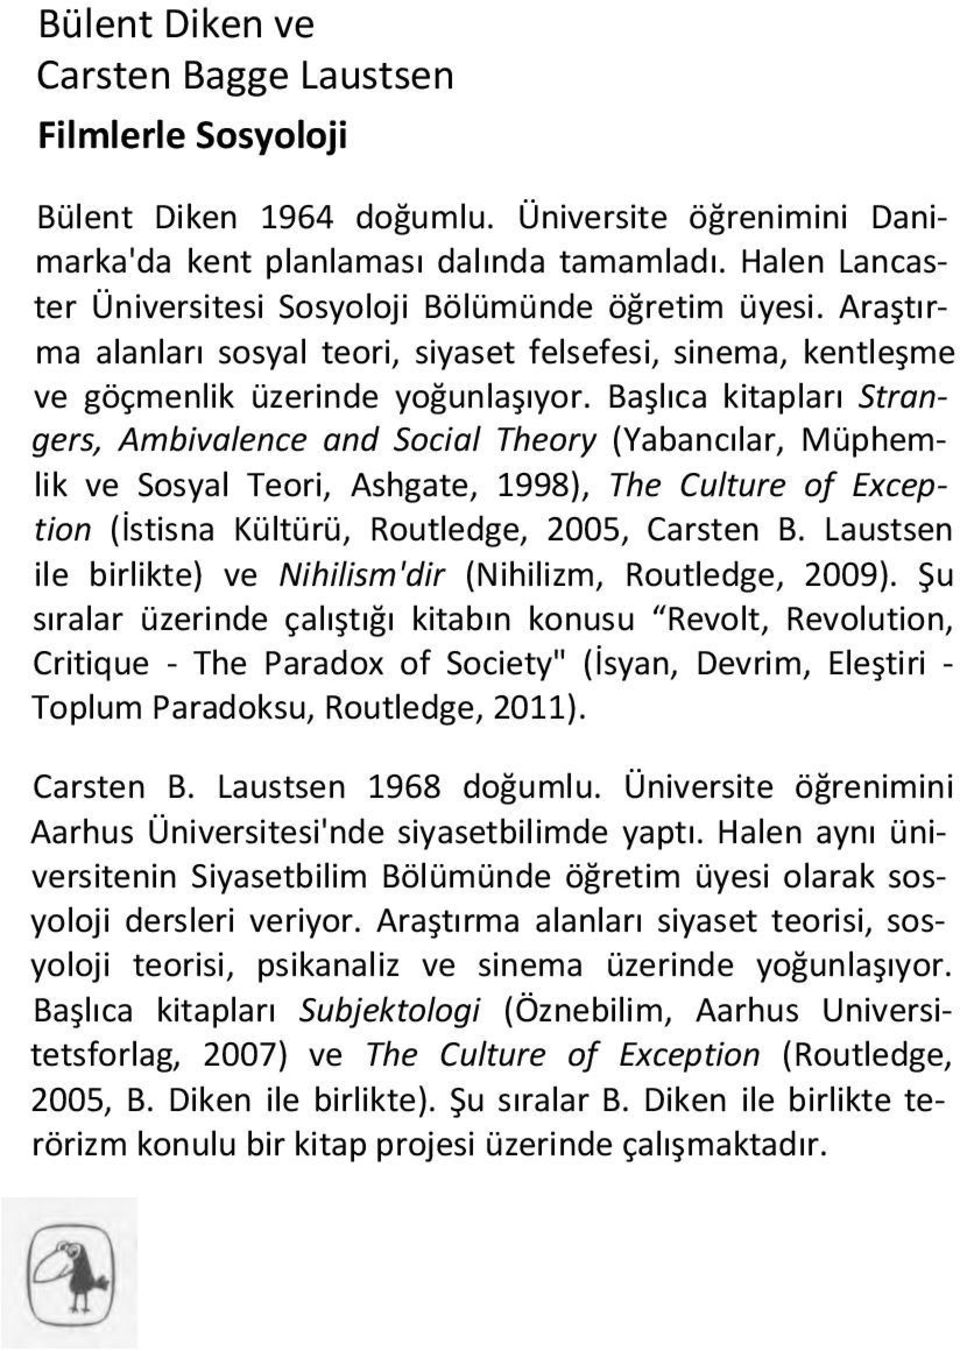 Başlıca kitapları Strangers, Ambivalence and Social Theory (Yabancılar, Müphemlik ve Sosyal Teori, Ashgate, 1998), The Culture of Exception (İstisna Kültürü, Routledge, 2005, Carsten B.